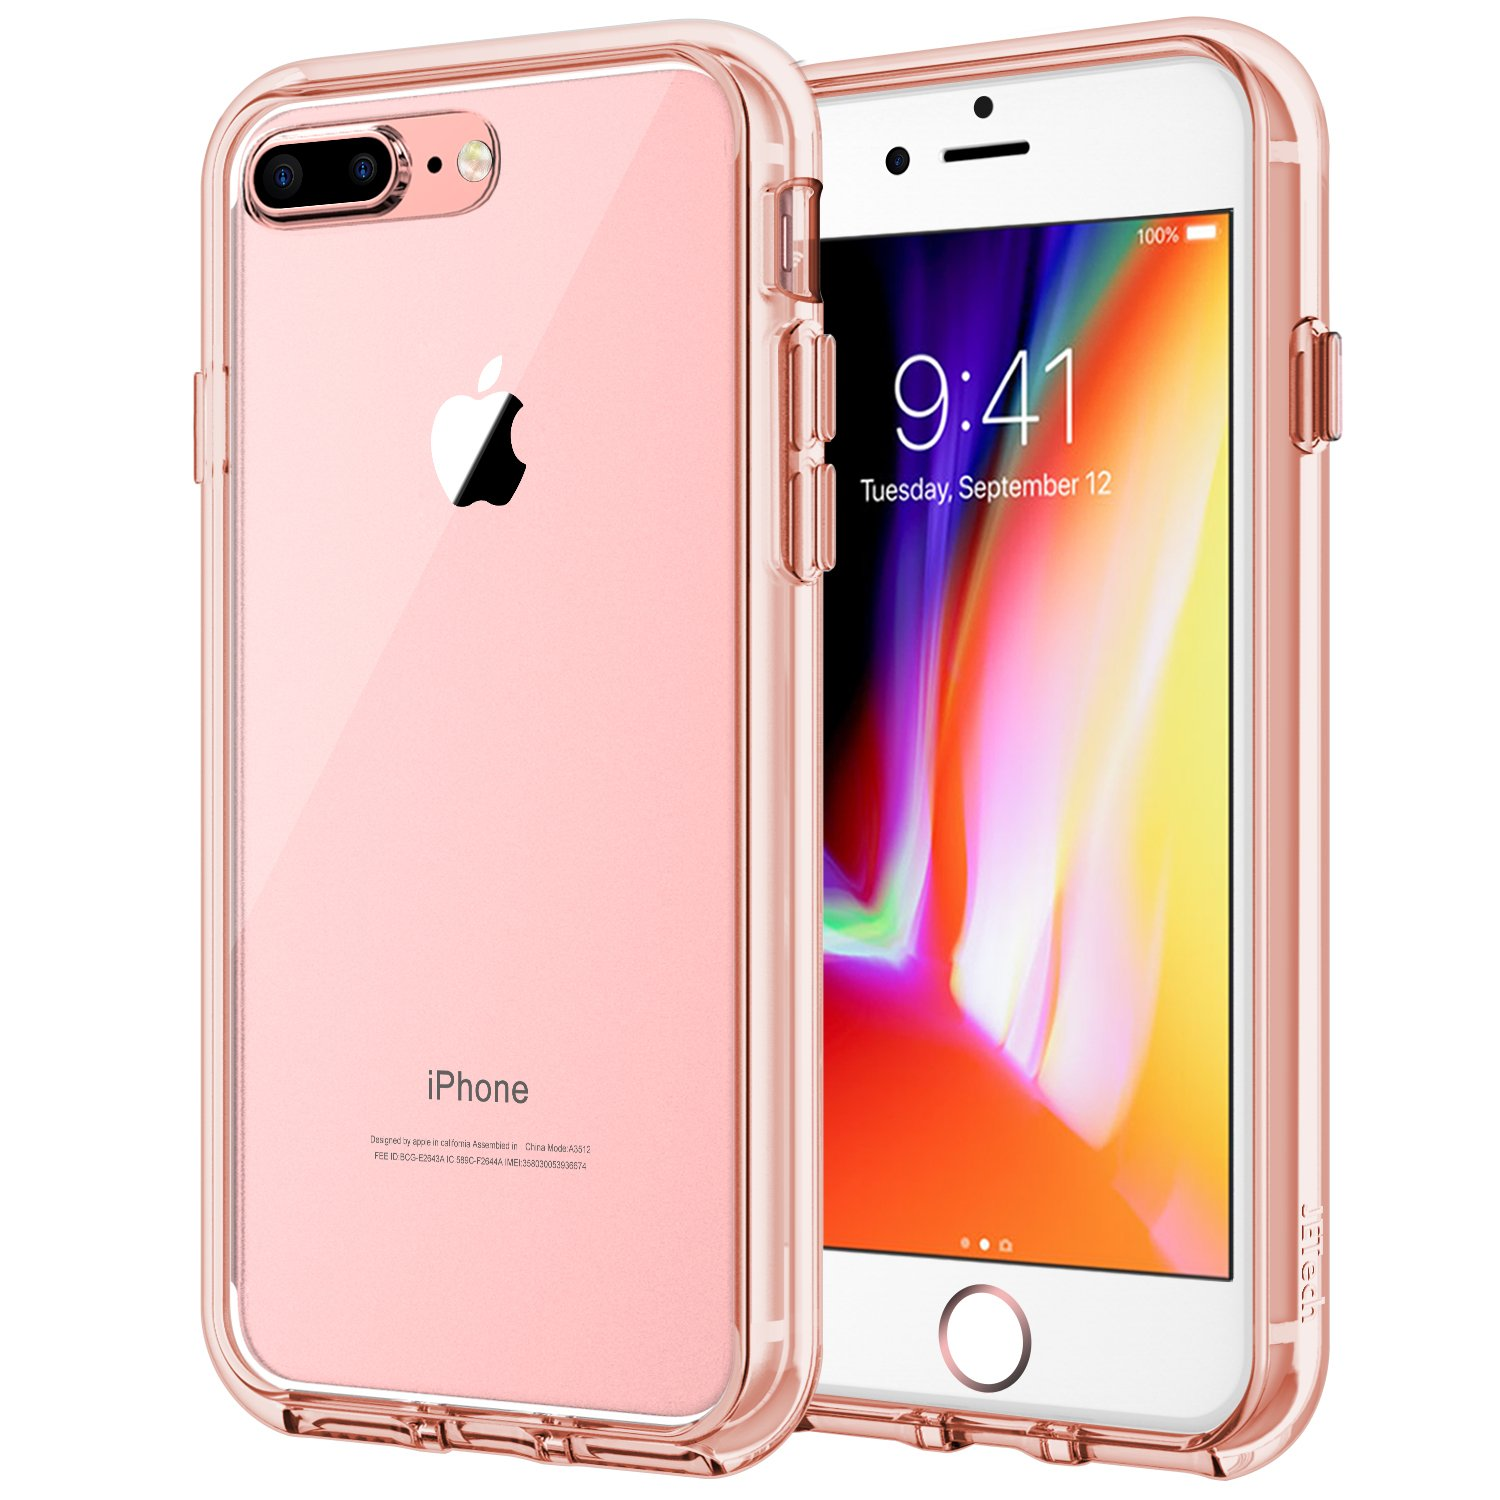 JETech Case for Apple iPhone 8 Plus and iPhone 7 Plus, Shock,Absorption  Bumper Cover, Rose Gold